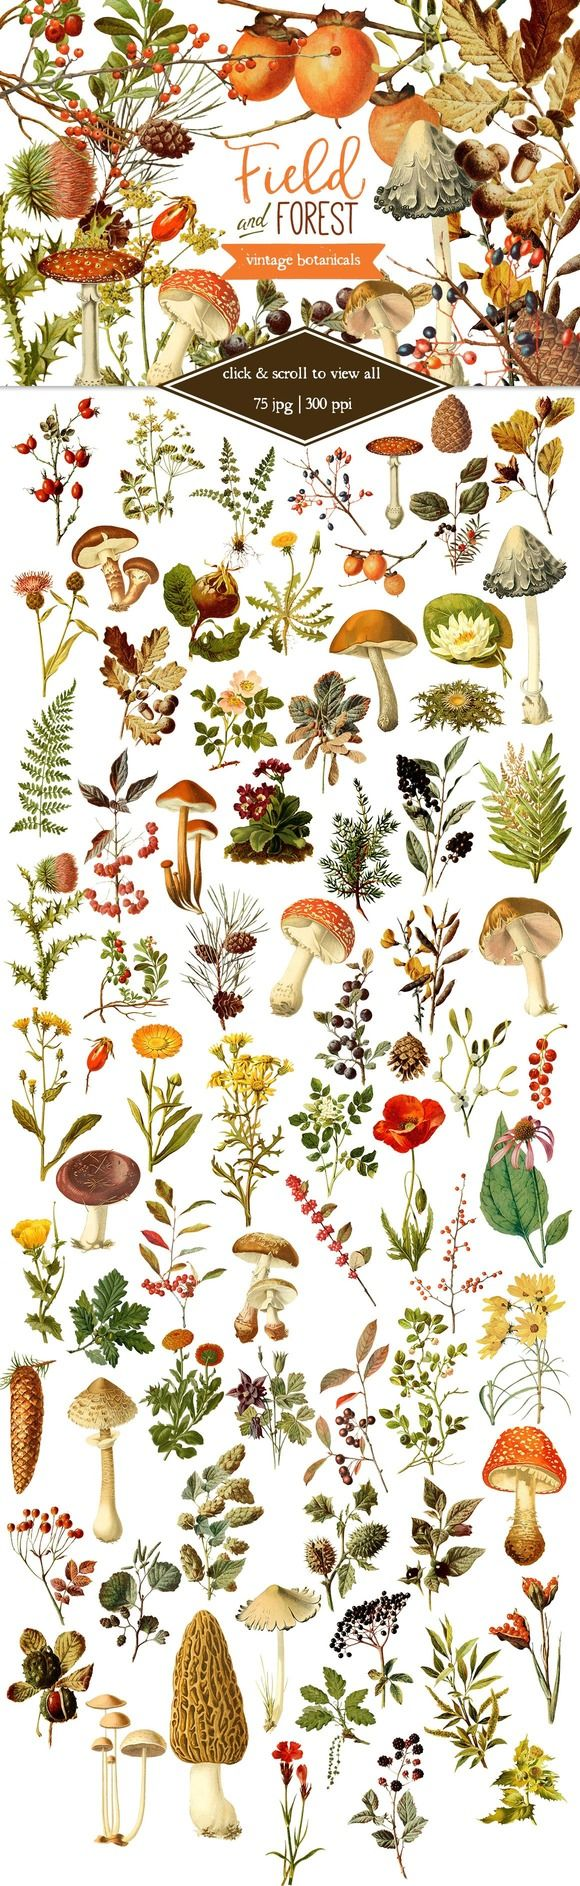 Field & Forest Vintage Botanicals by Eclectic Anthology on Creative Market